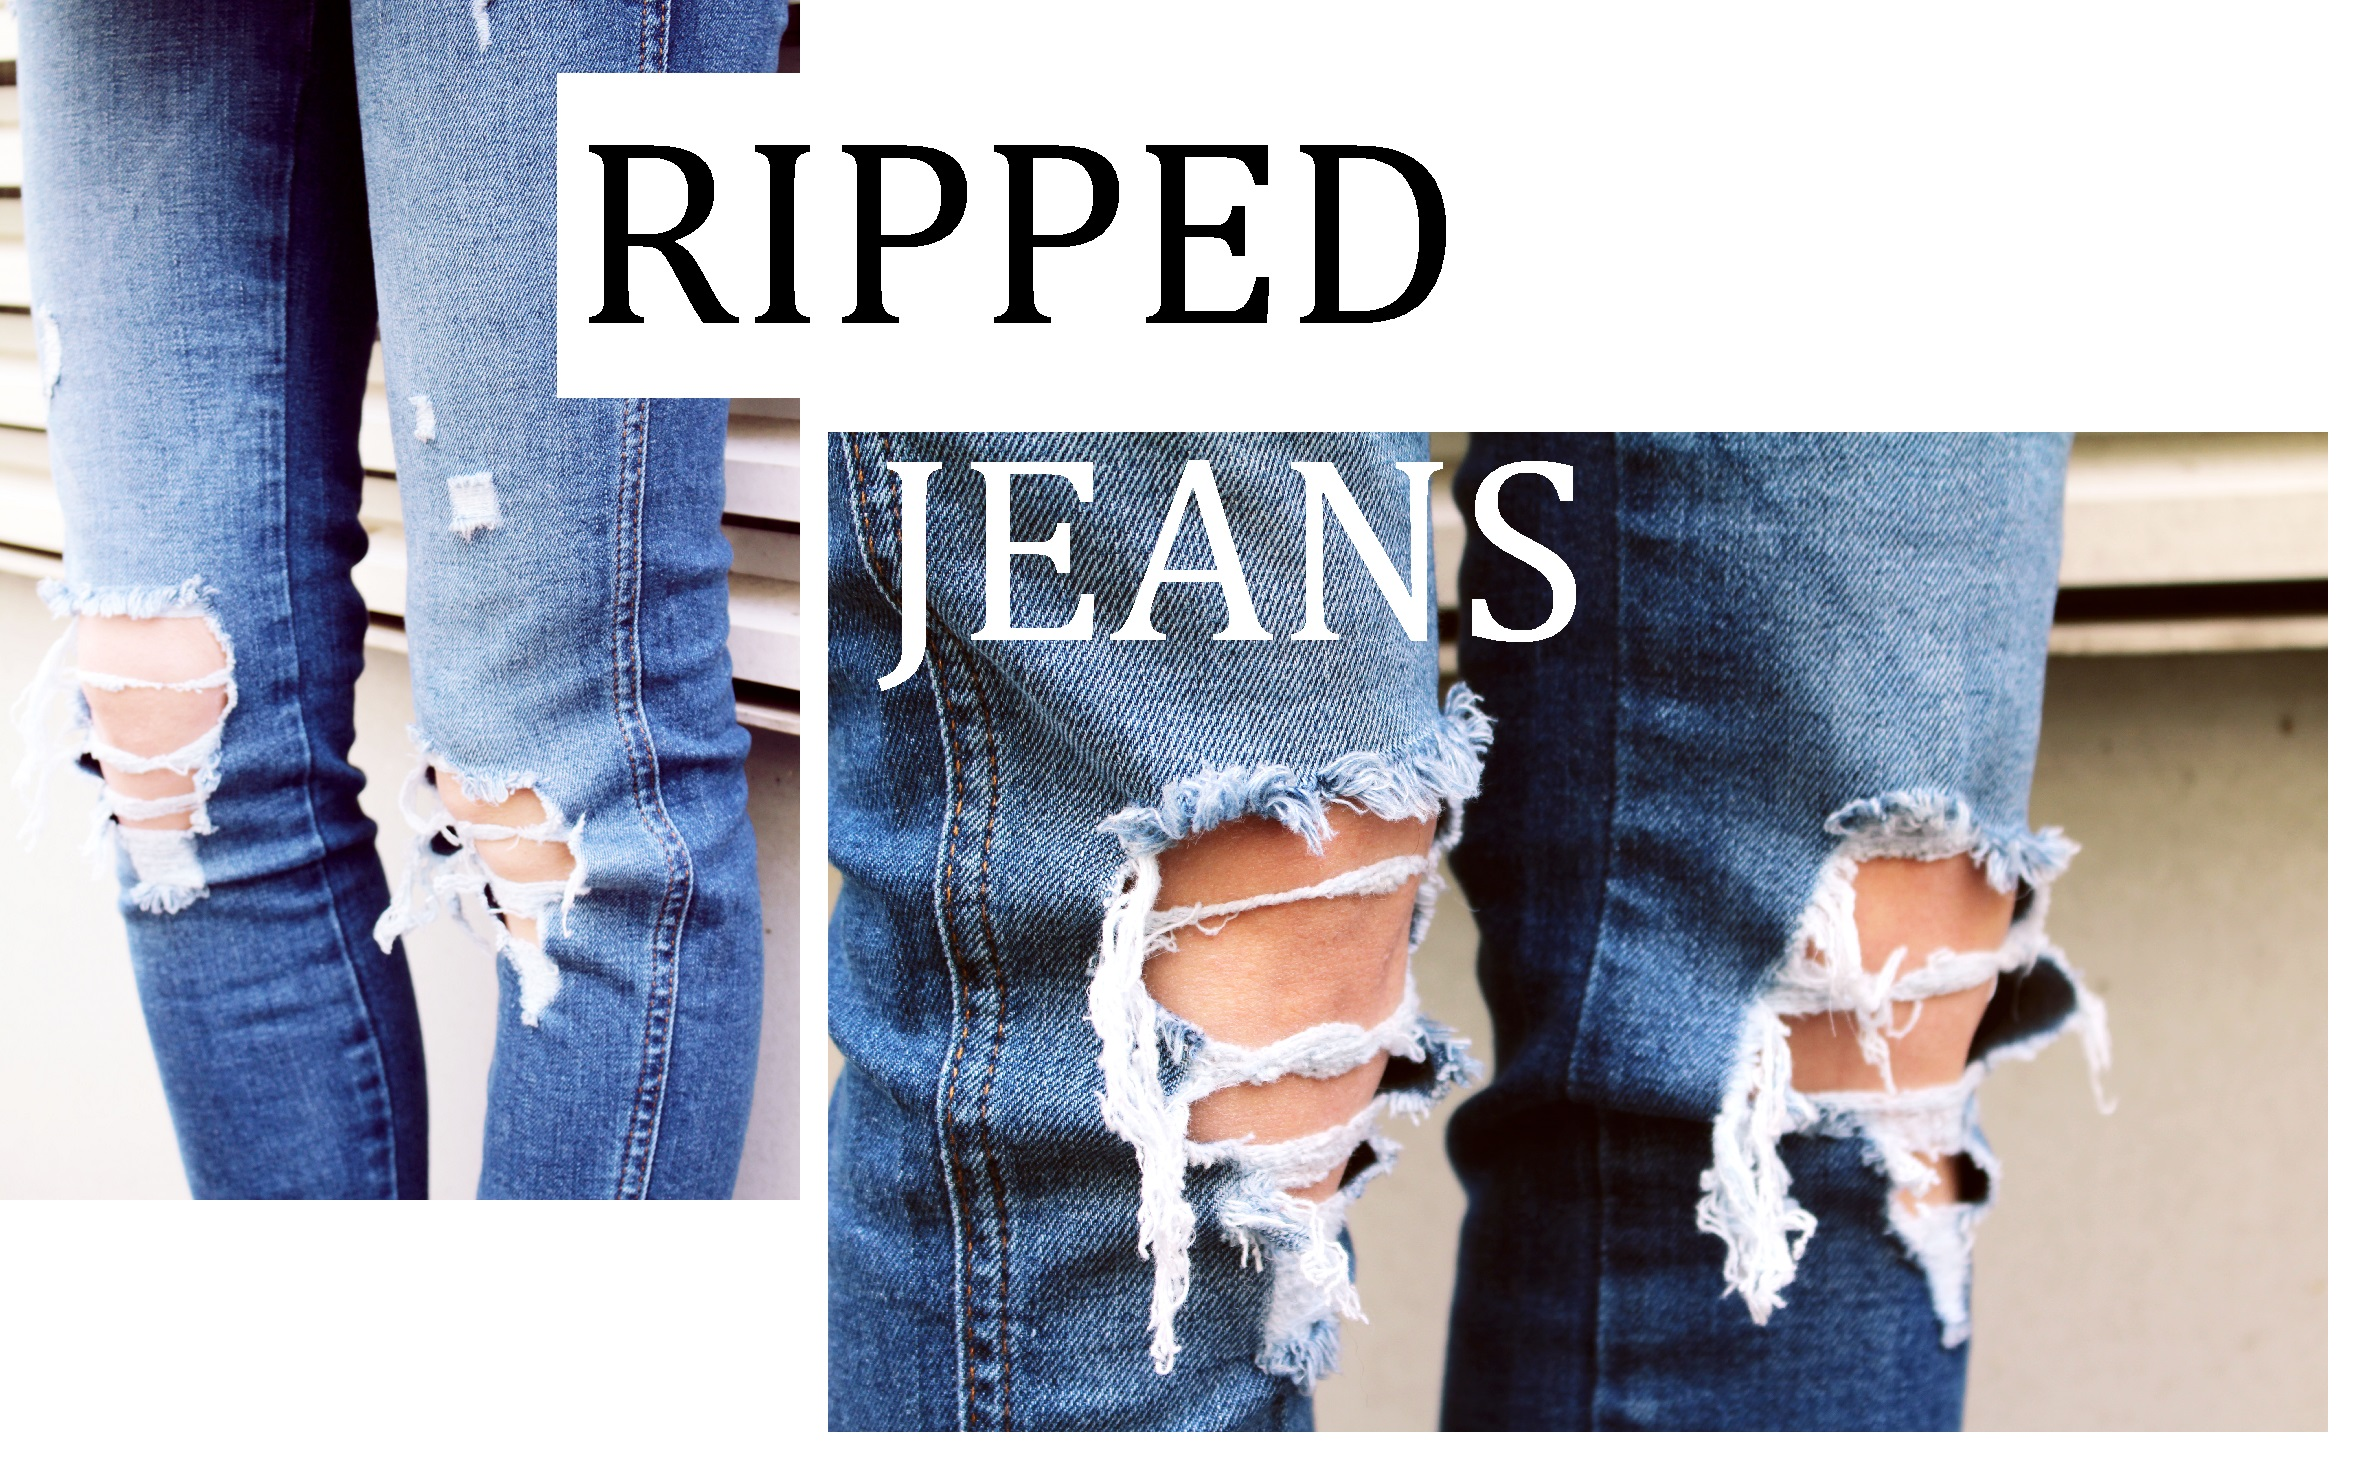 ripped jeans text